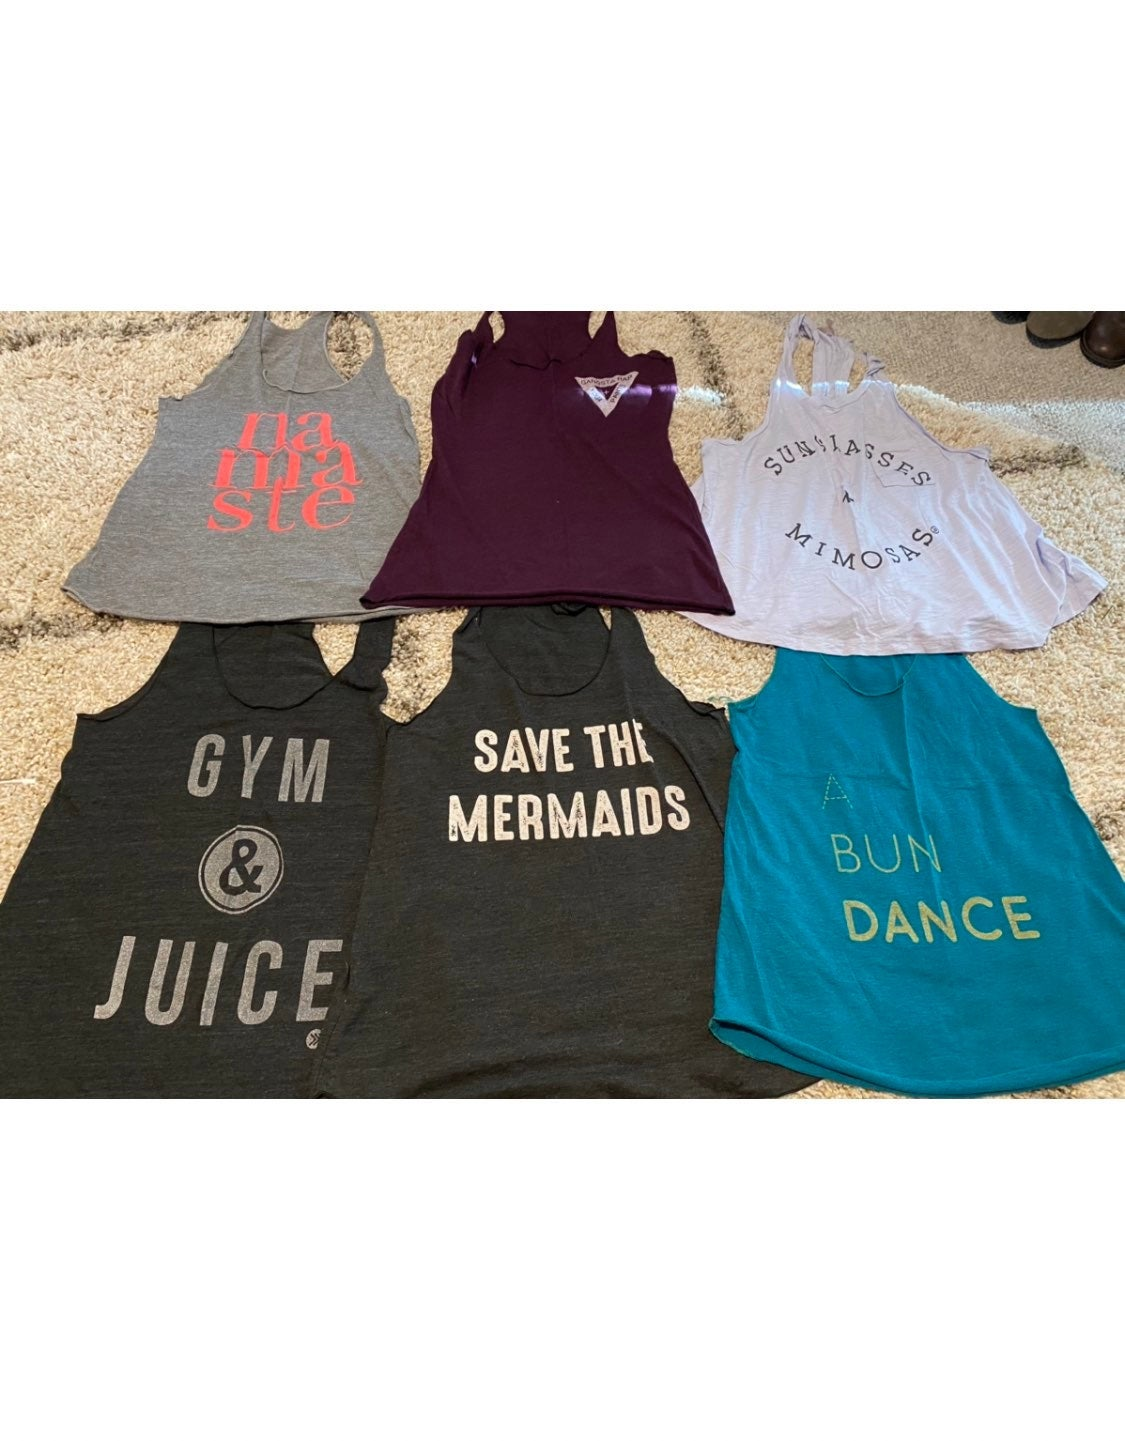 American Apparel (&other) workout Tanks